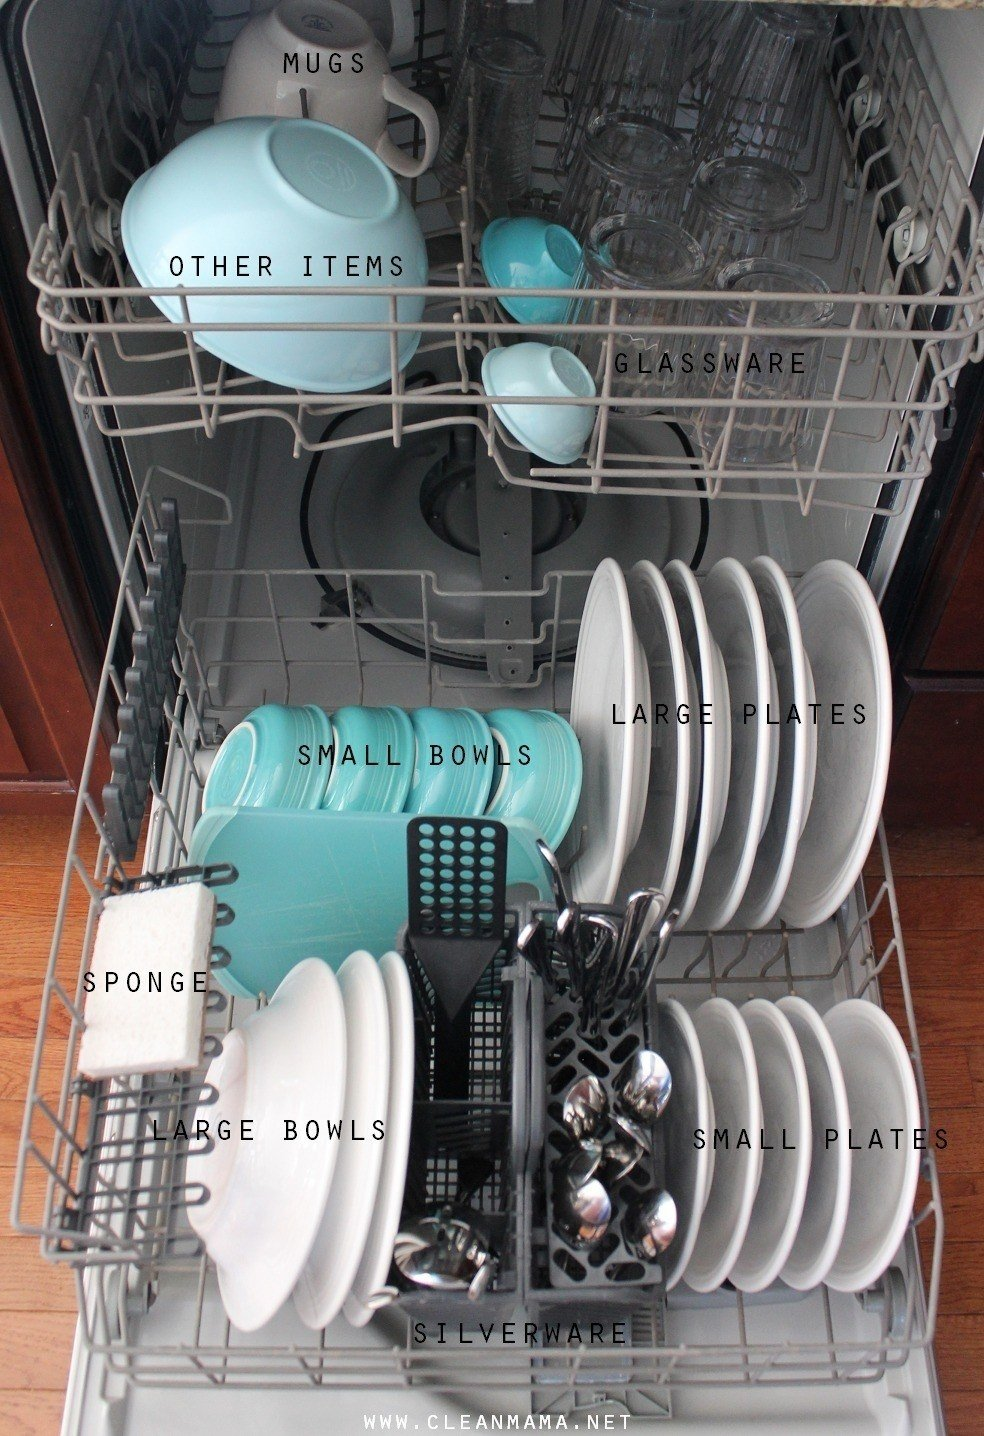 Your dishwasher uses the same amount of water and electricity no matter how many dishes are inside, so it's most efficient to wait until it can wash the maximum number of dishes. From Clean Mama.